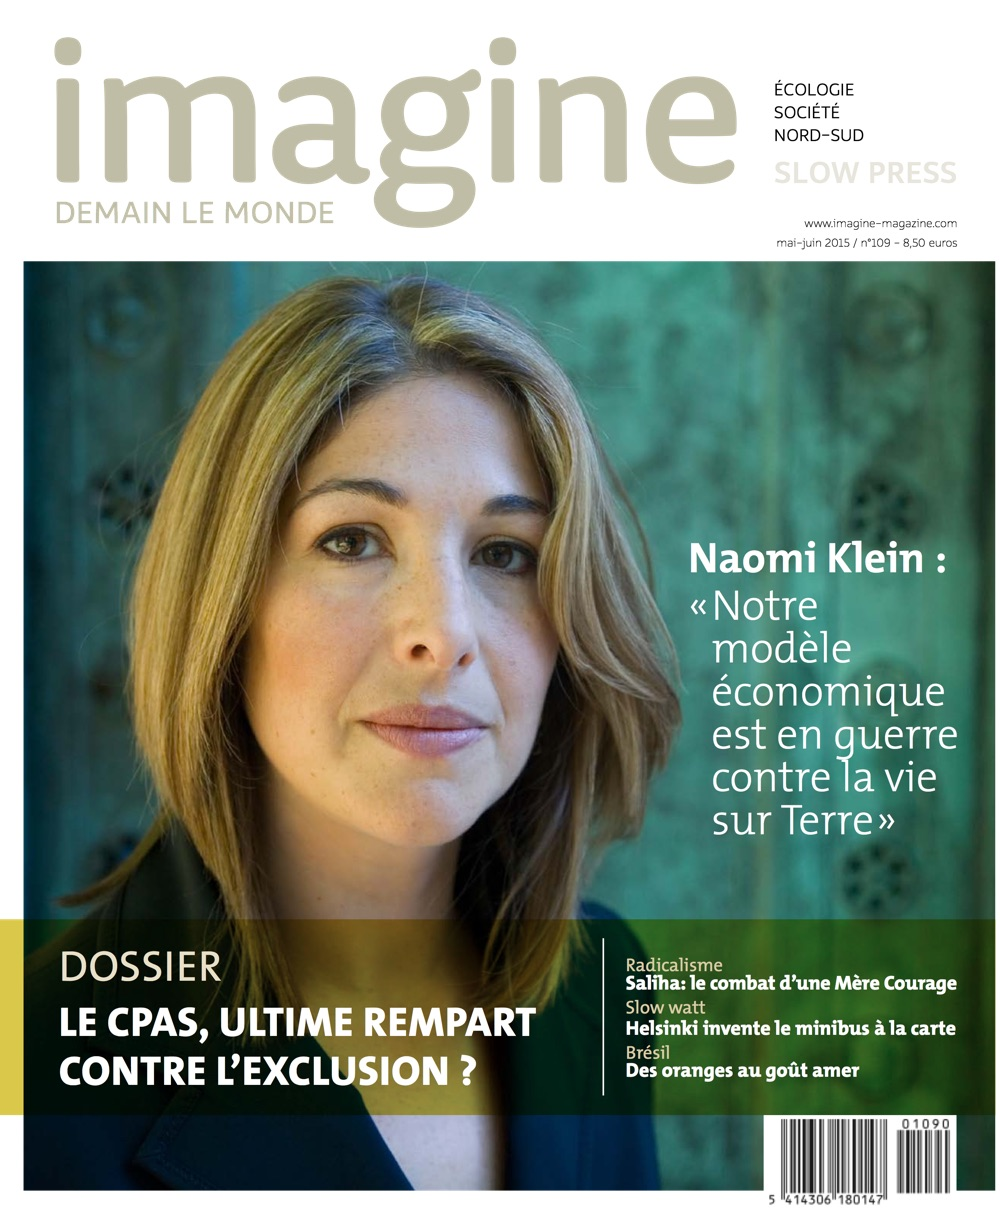 Imagine demain le monde, n°109